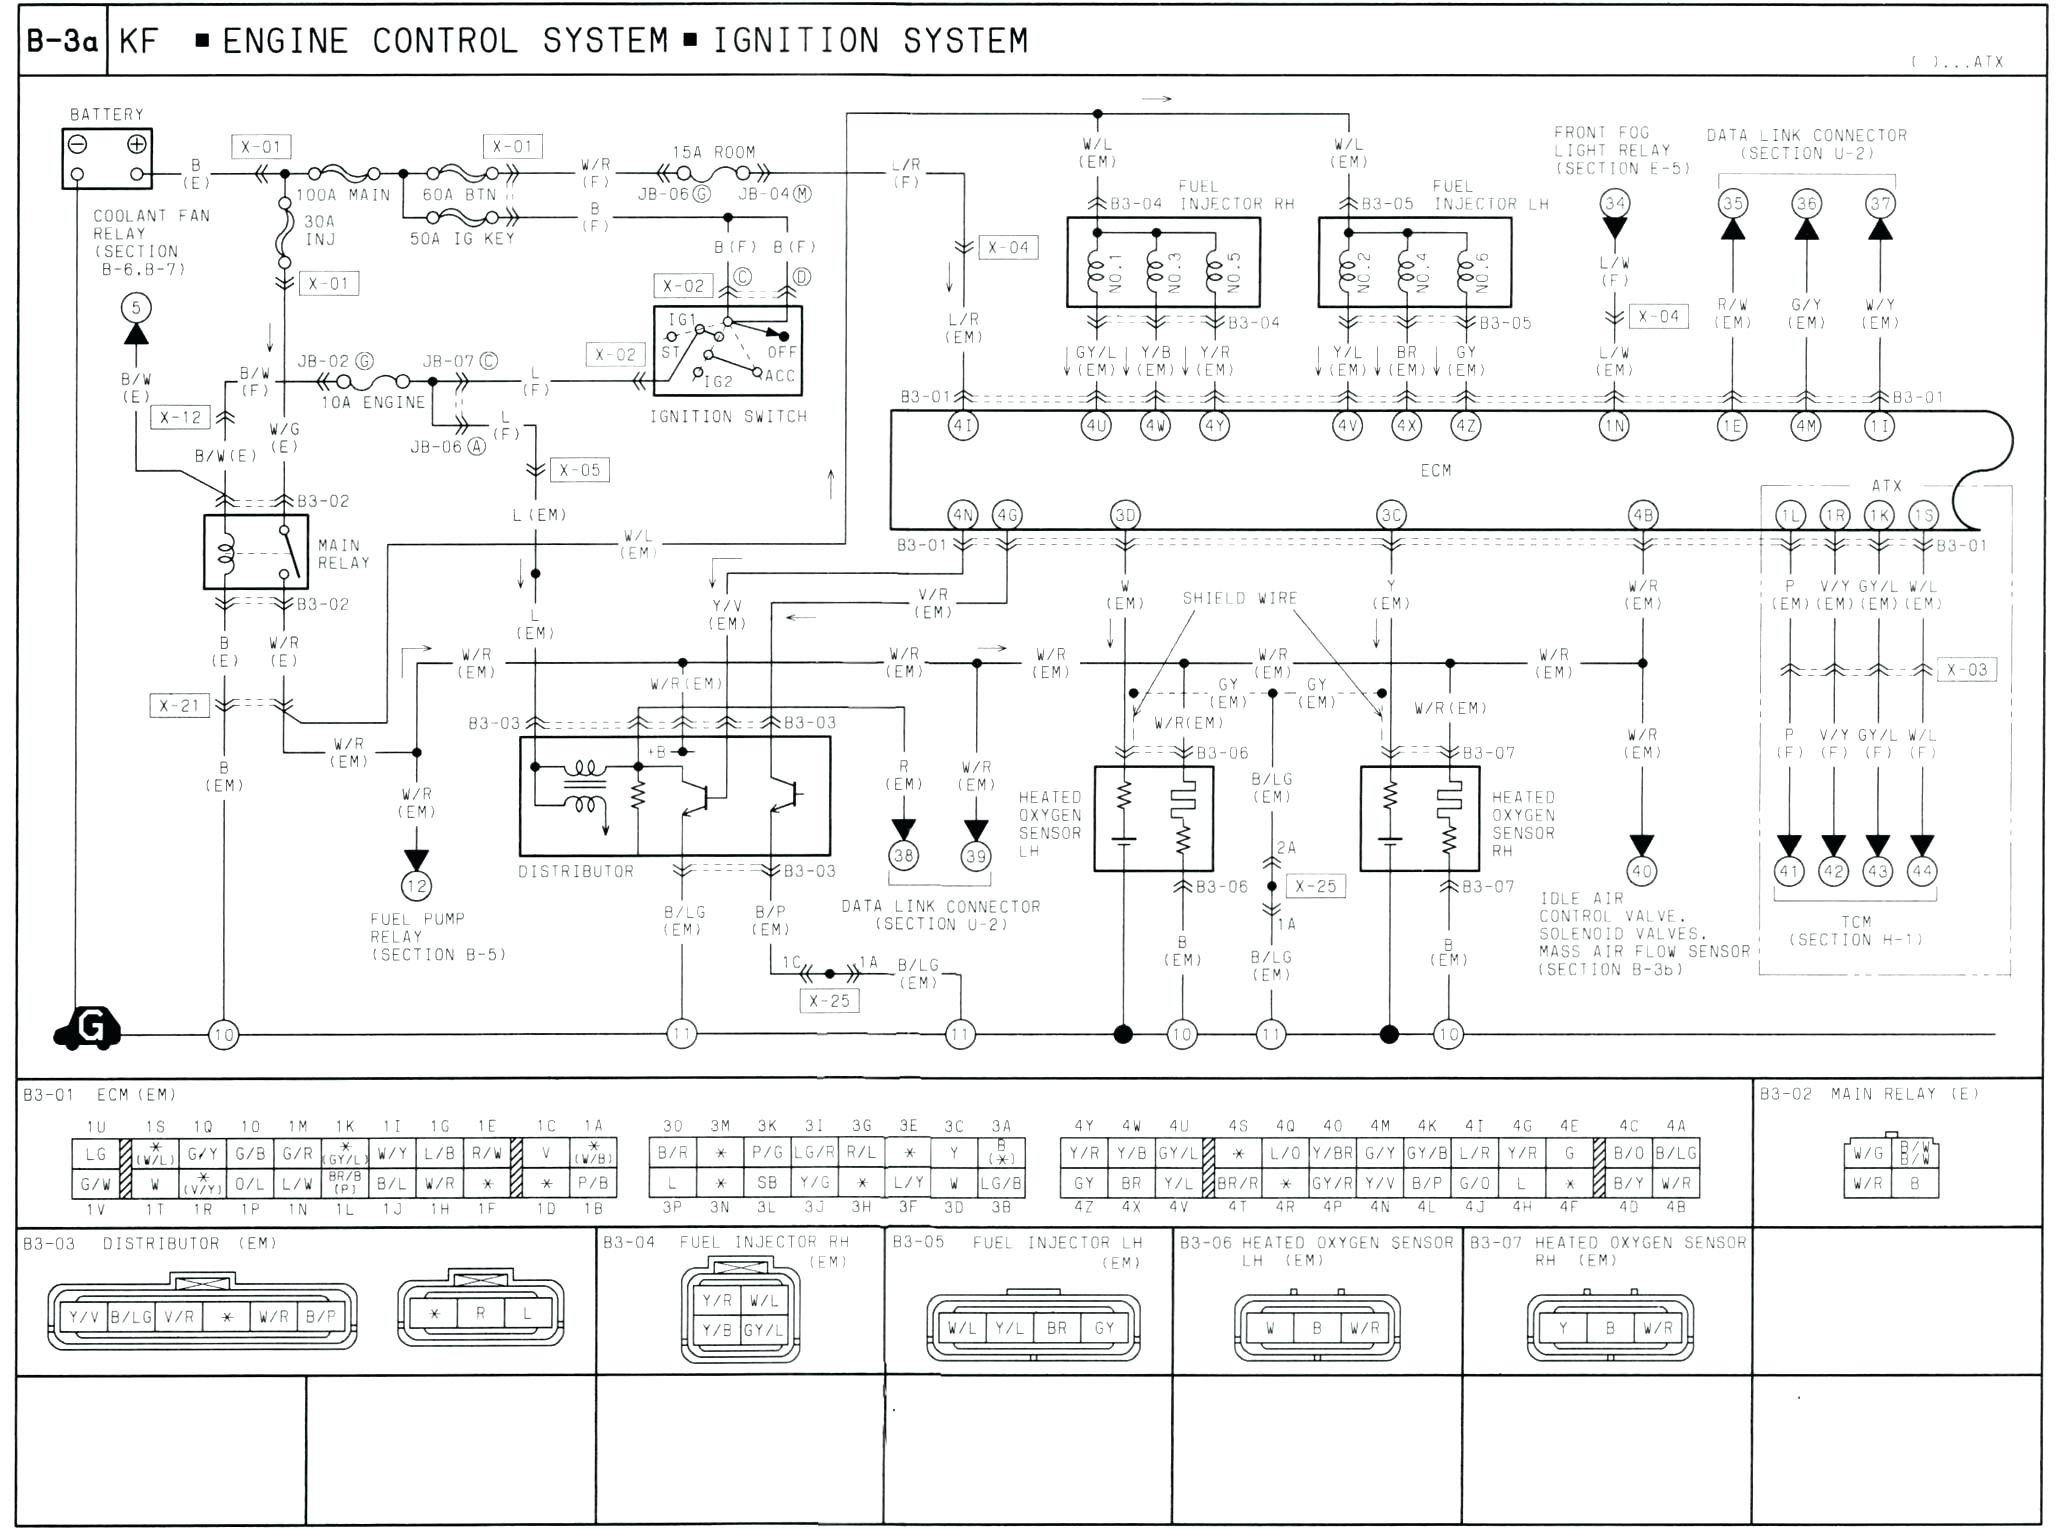 1986 mazda b2000 ignition wiring diagram ford f350 trailer engine file 2006 mercury milan